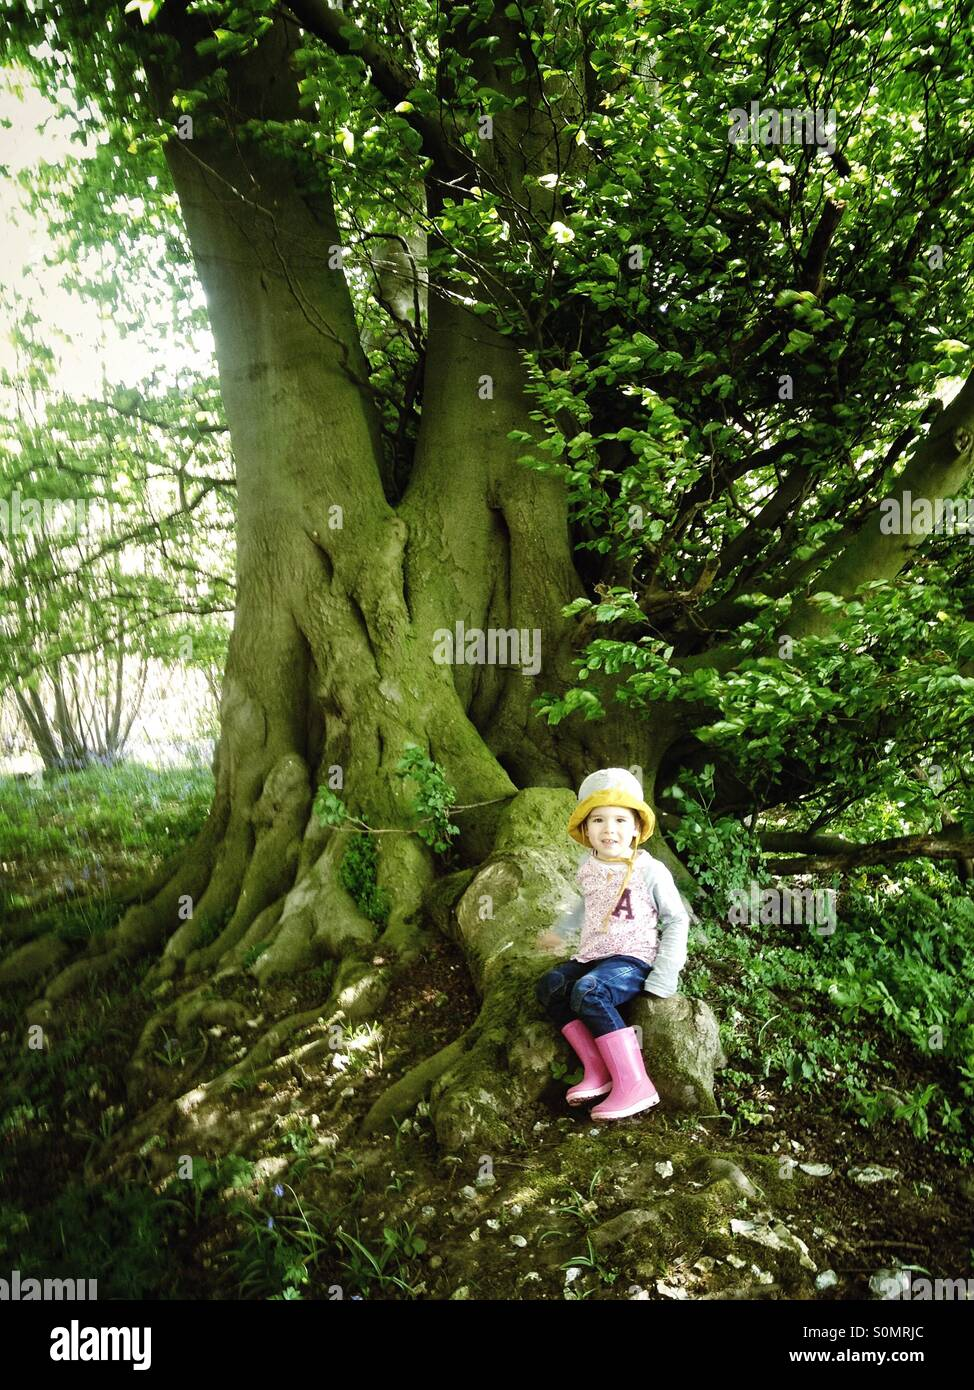 Little girl by large tree - Stock Image